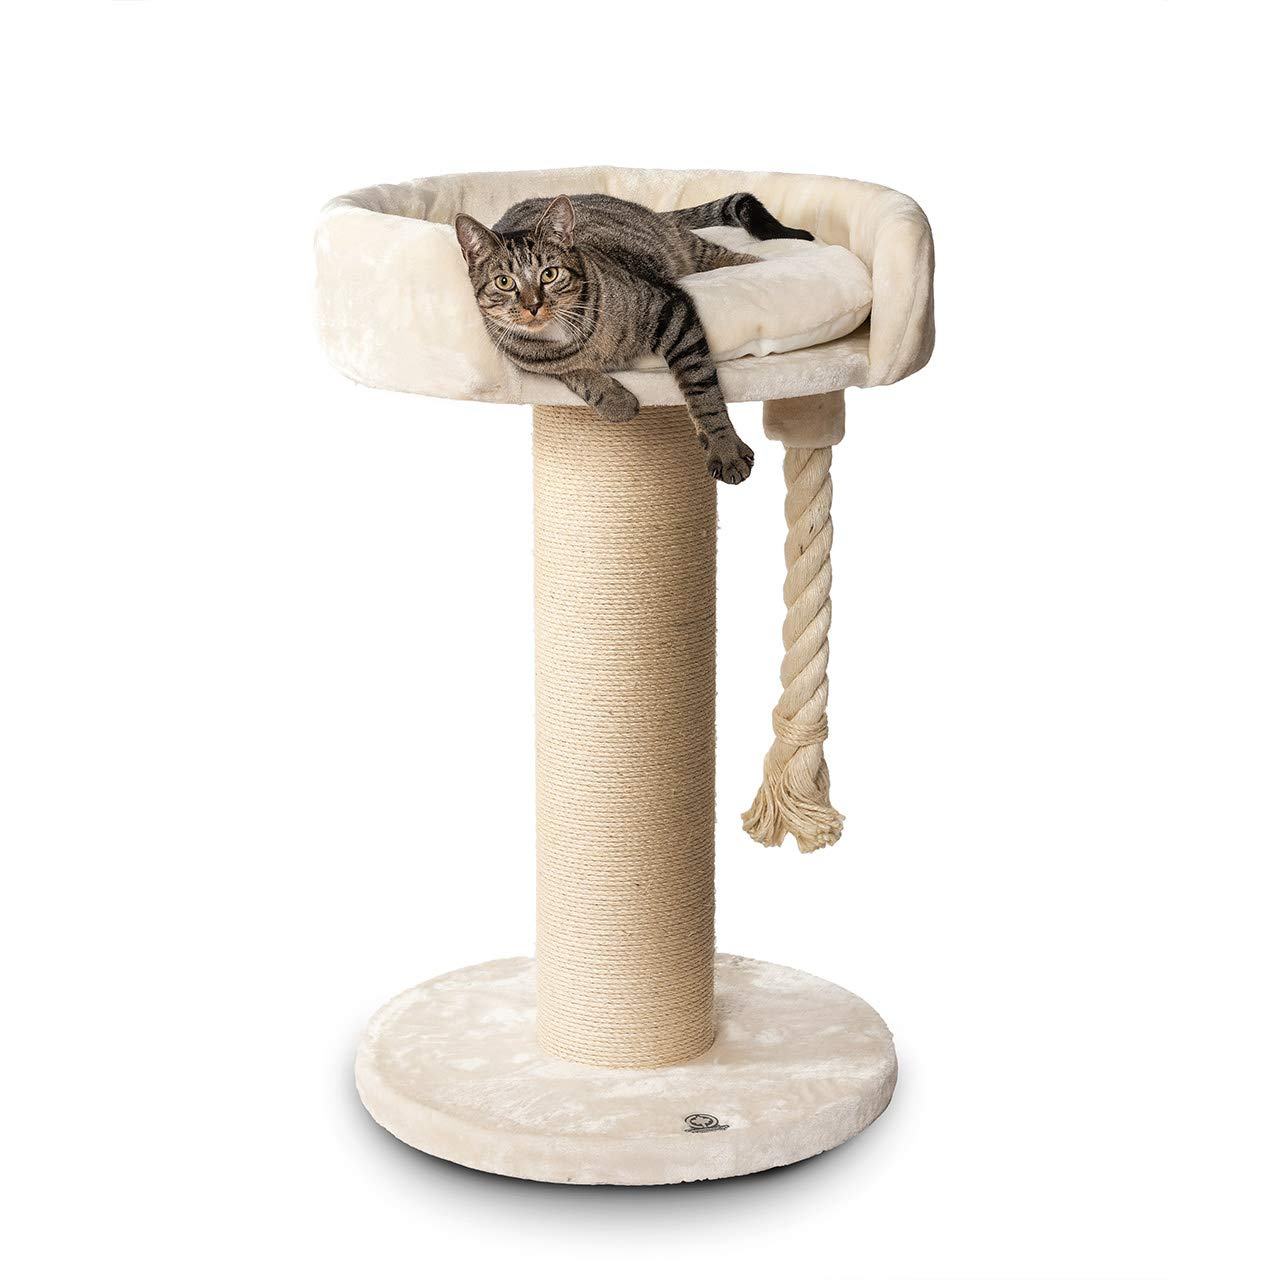 CanadianCat Company Cat Tree Lounge Ontario XXL beige with 20cmØ sisal stem, suitable for large and heavy cats, e.g. maincoon